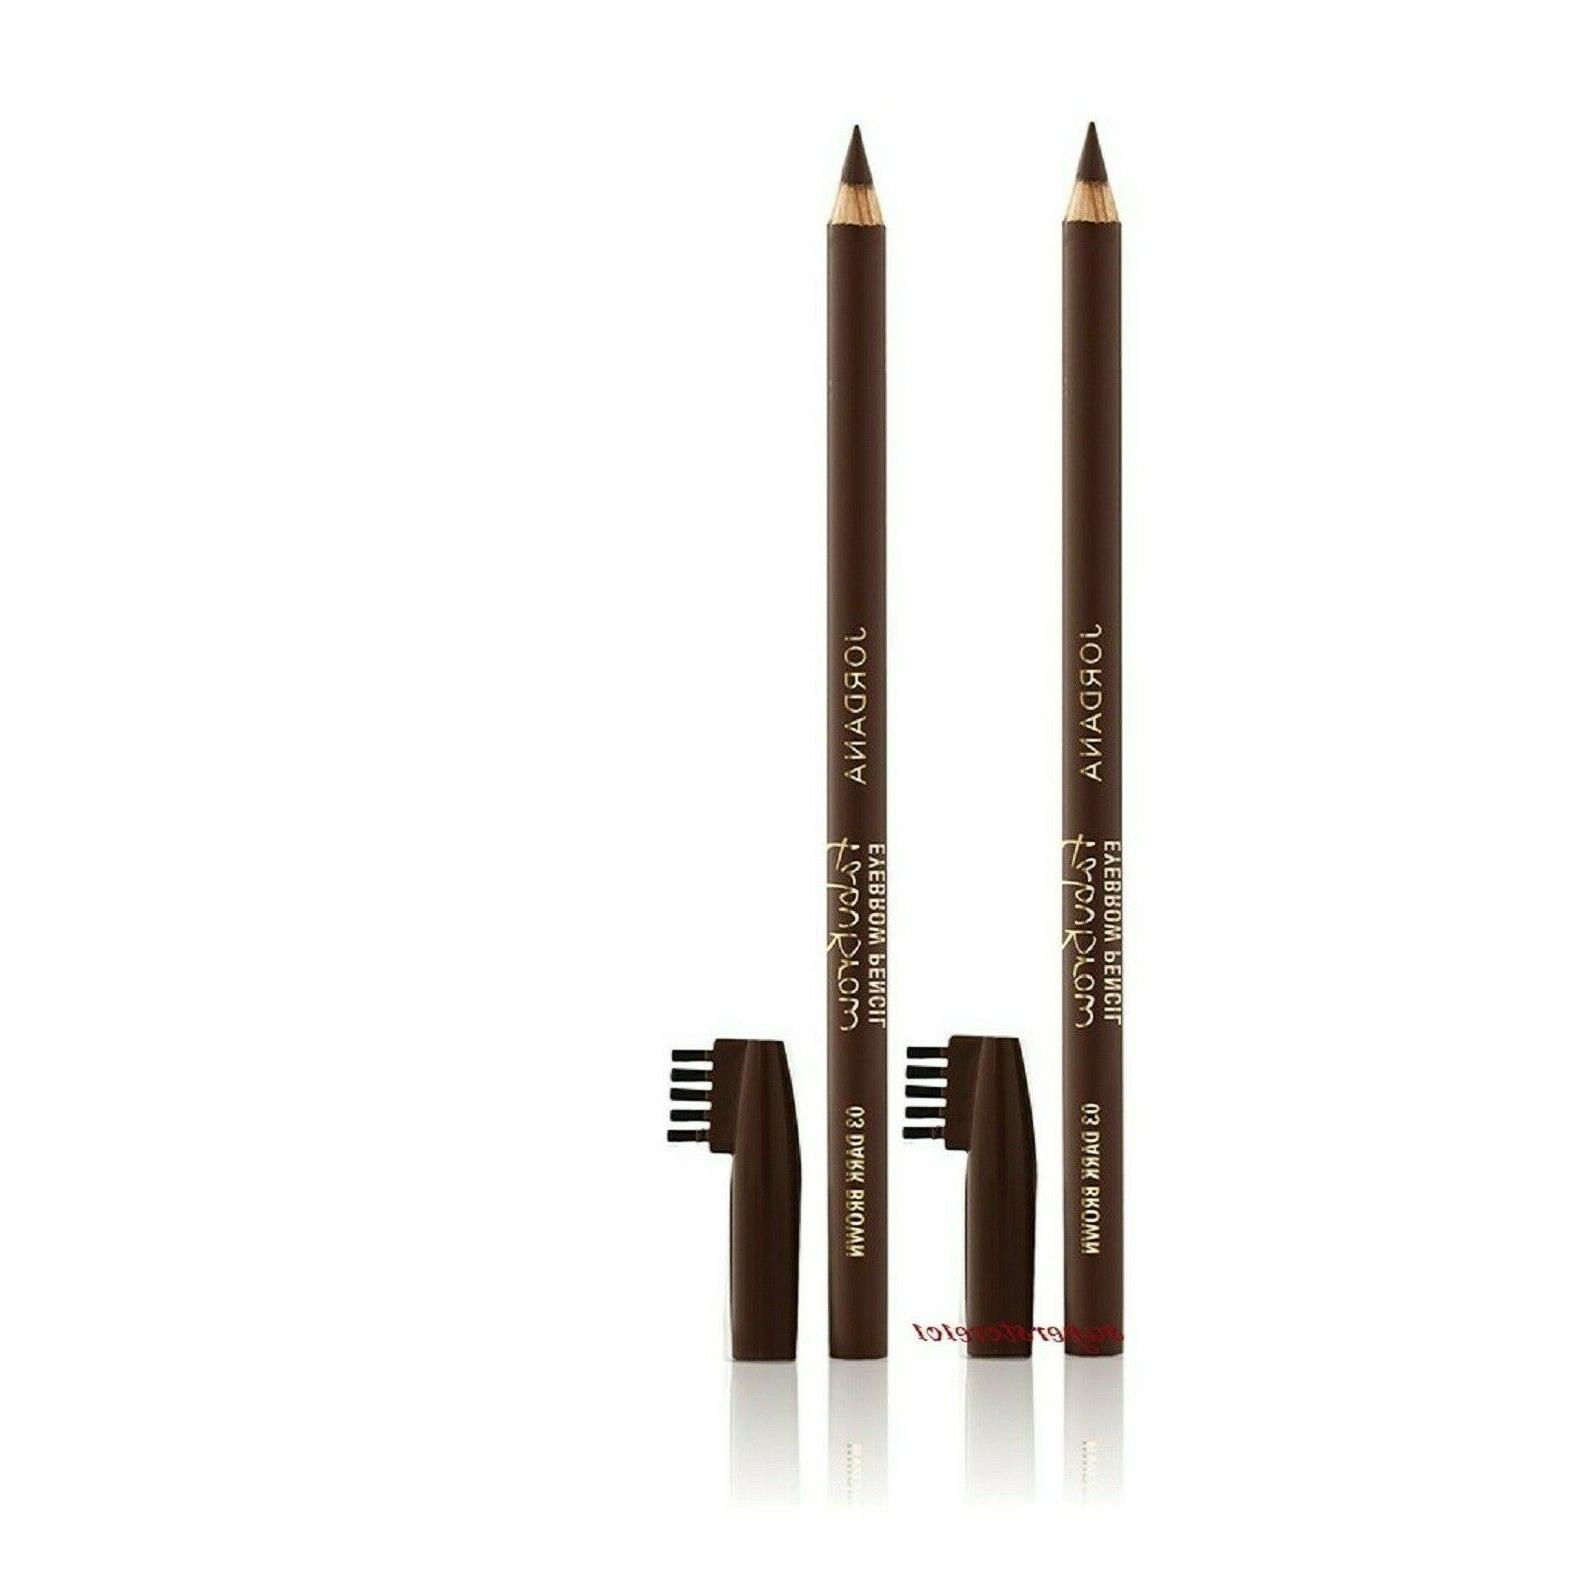 2 Pack Jordana Cosmetics Fabubrow Eyebrow Pencil 03 Dark Bro